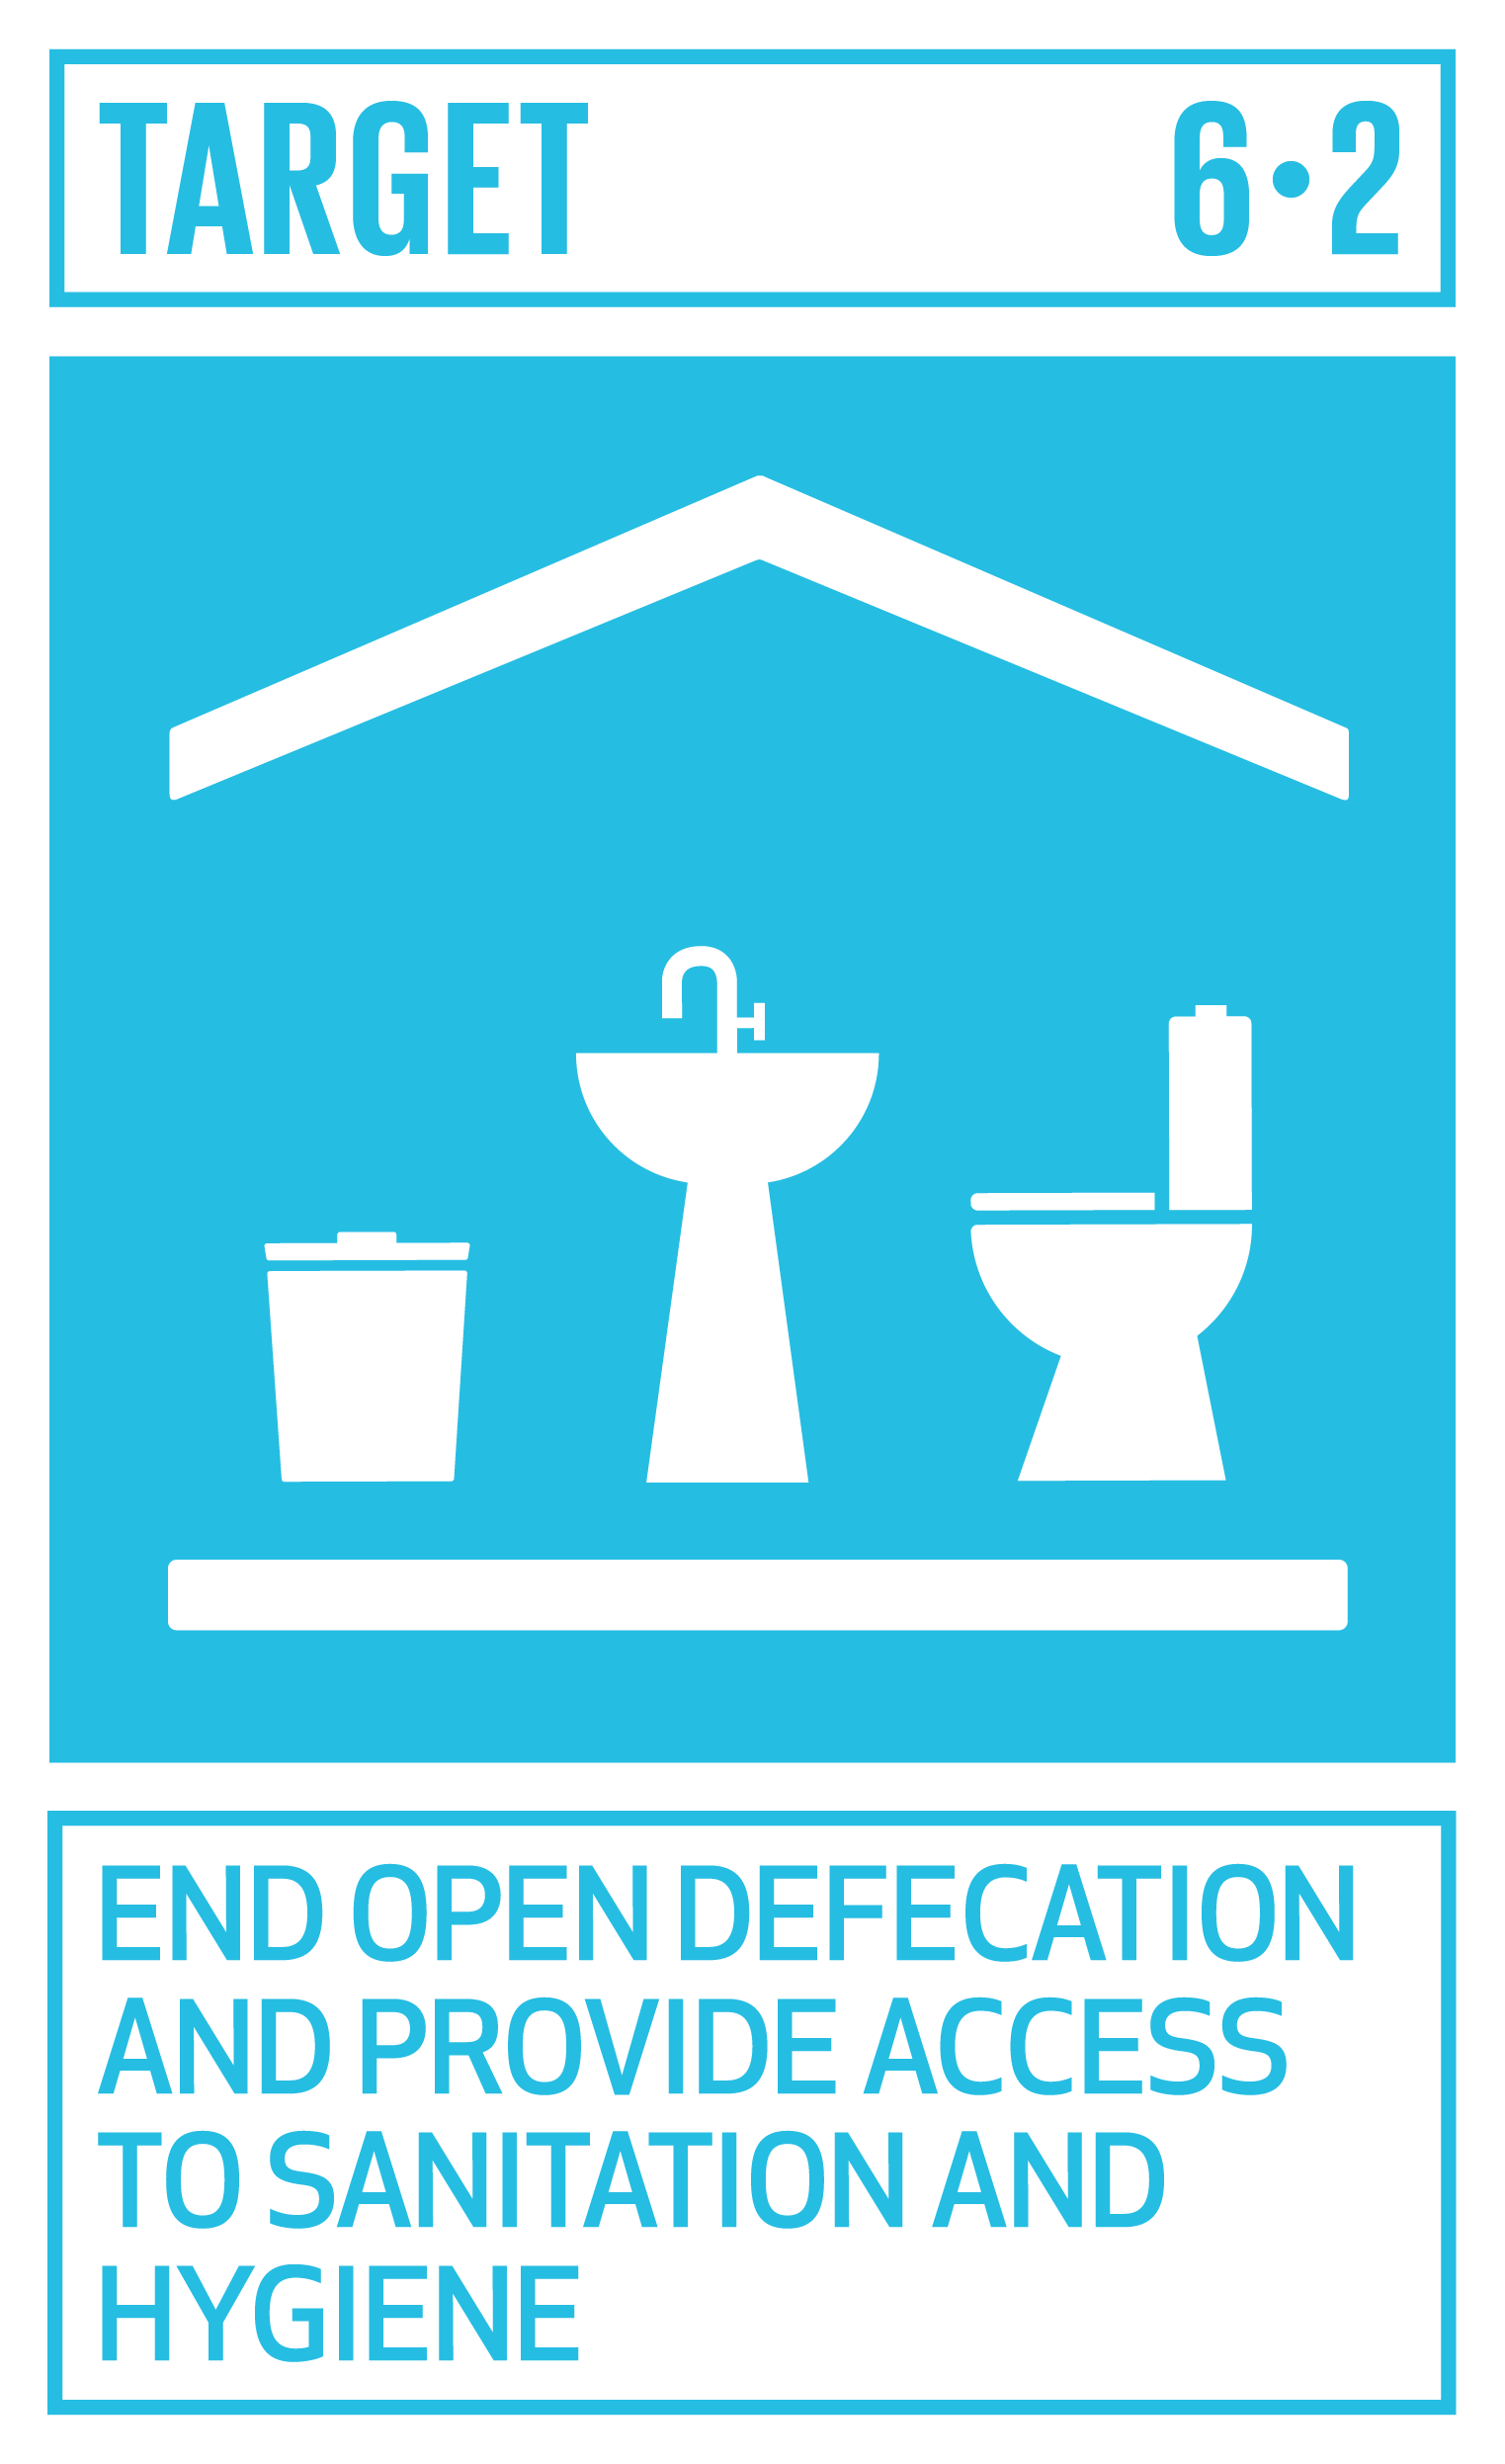 The balance of water consumption and sanitation is the necessary calculation in the design of any facilities and in water use